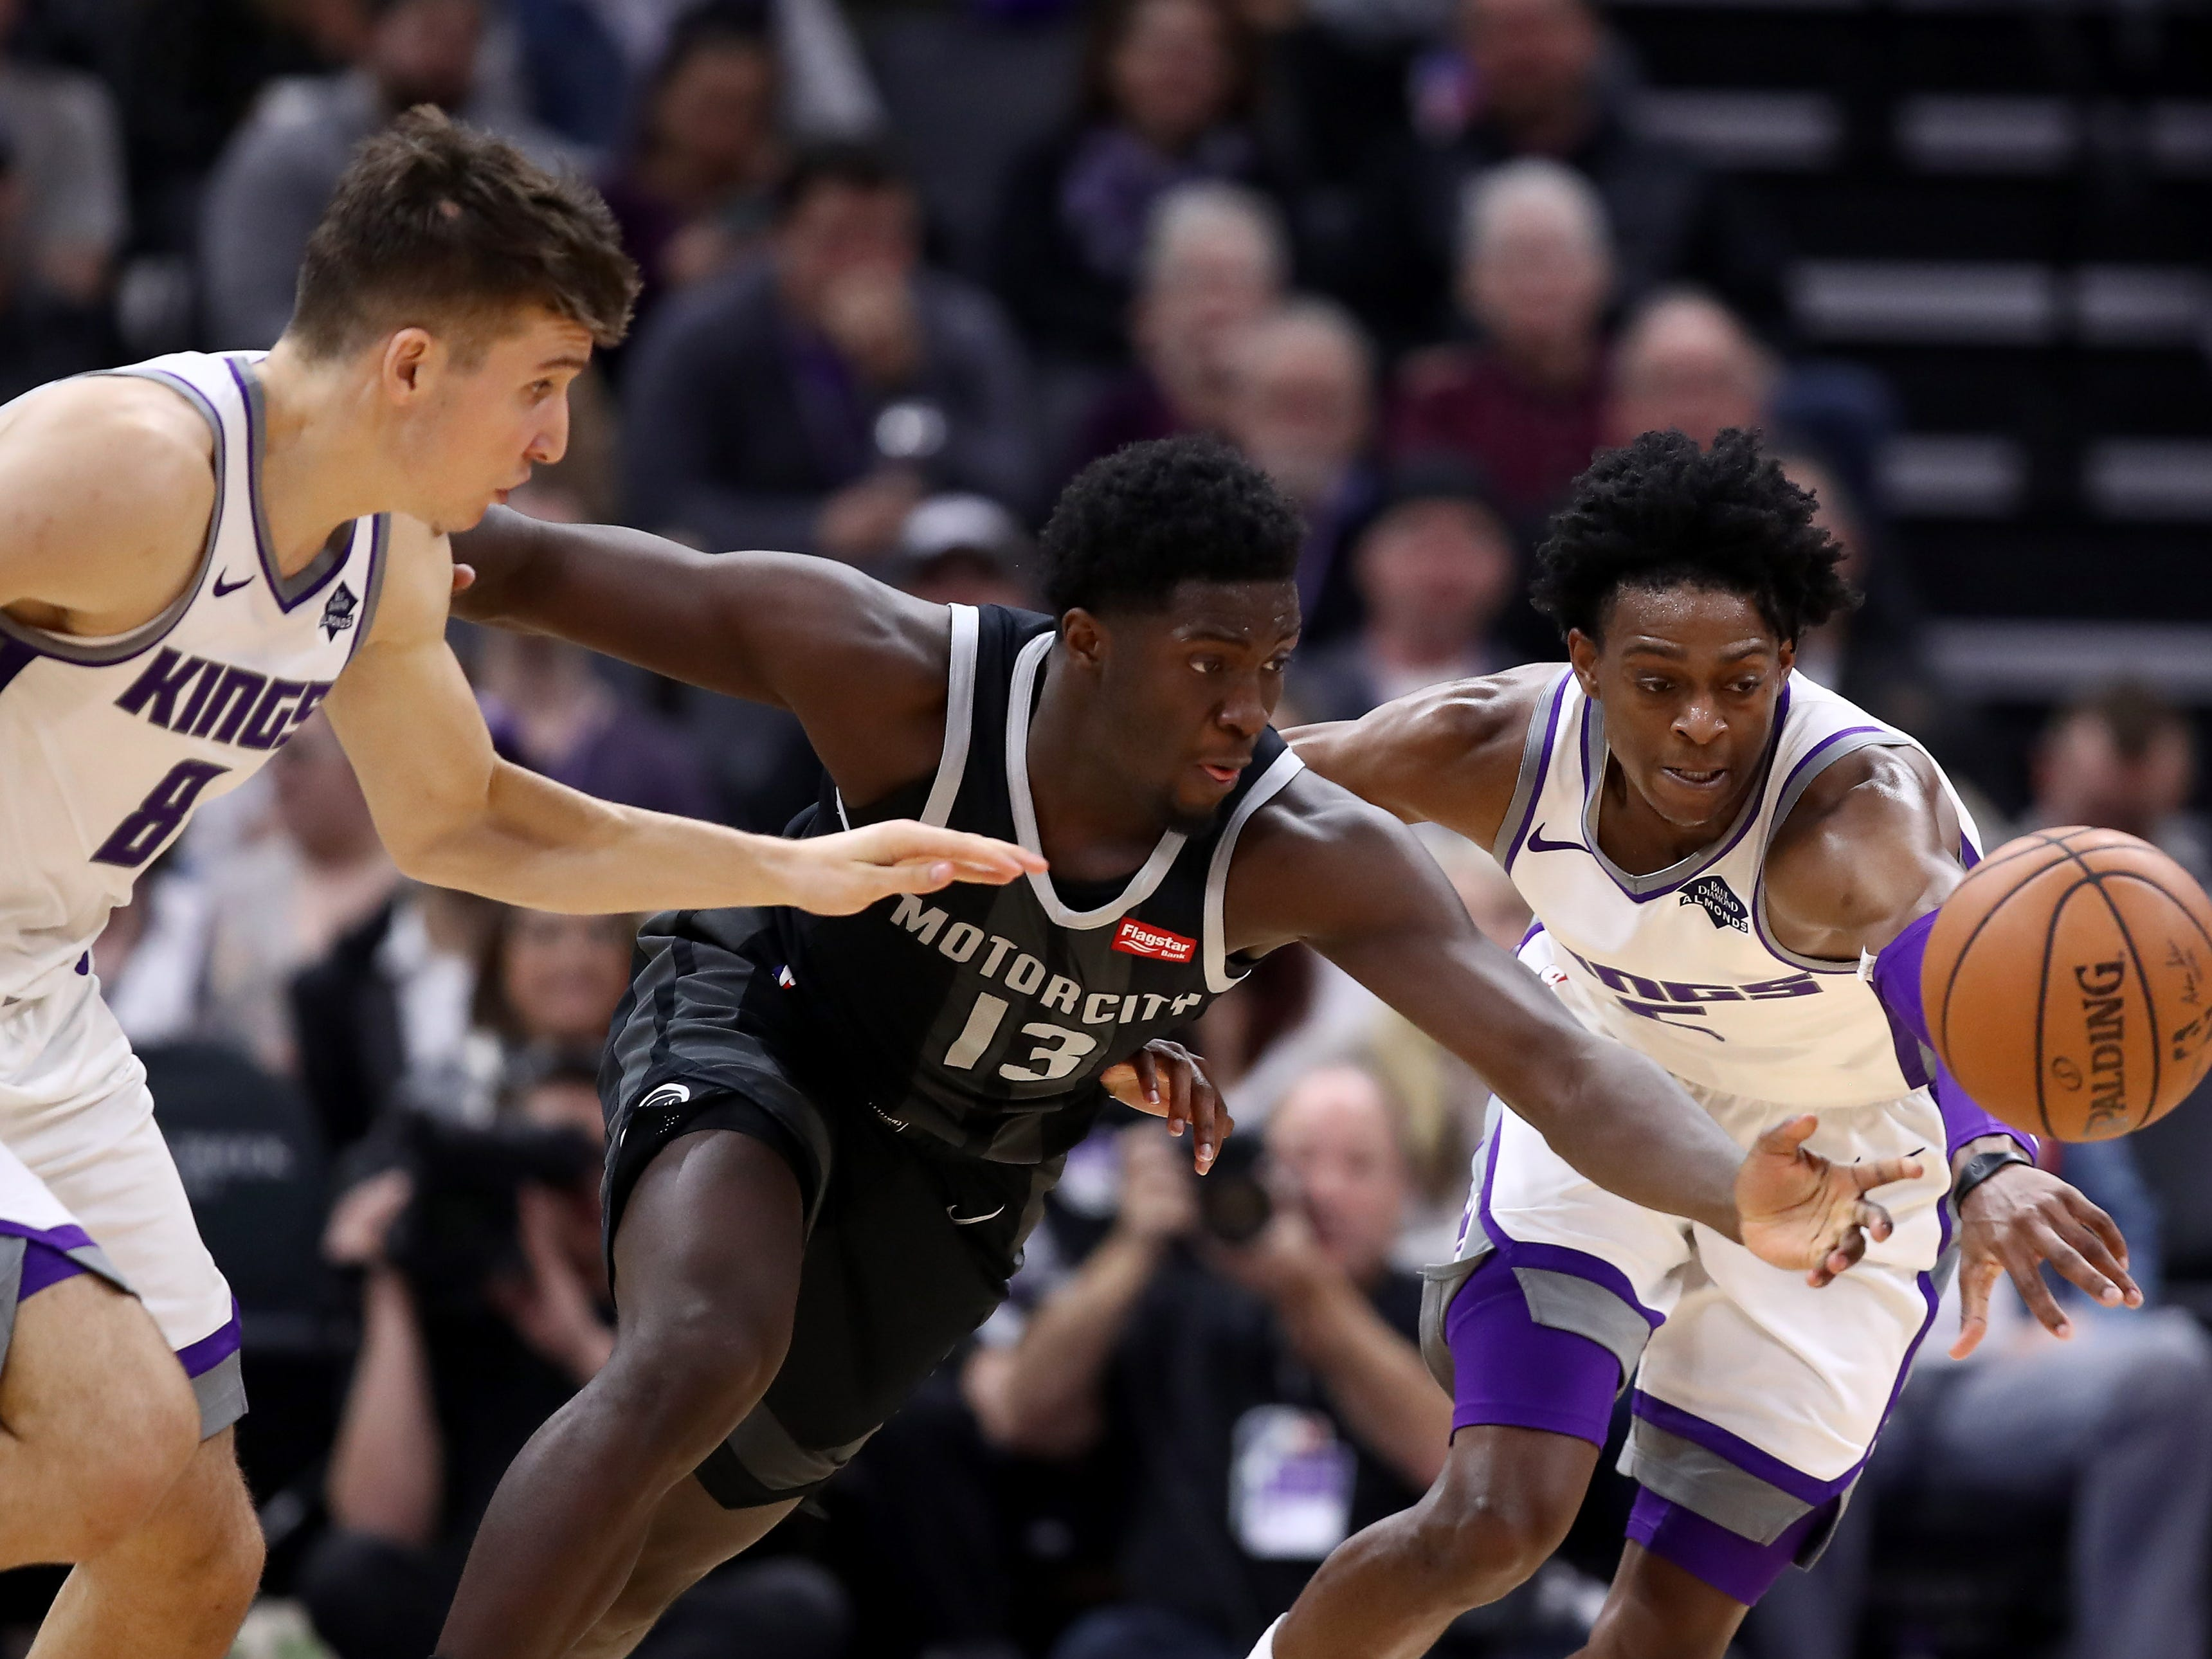 Khyri Thomas -- Stats: 3.7 pts., 1 rebs., 54% 3FG in nine games. Age: 22. The rookie was stuck on the bench in what looked to be a development year, but he's found his way into spot minutes and has impressed Casey. He's a good two-way player but his 3-point shooting could help him see more game time in the second half. Grade: B